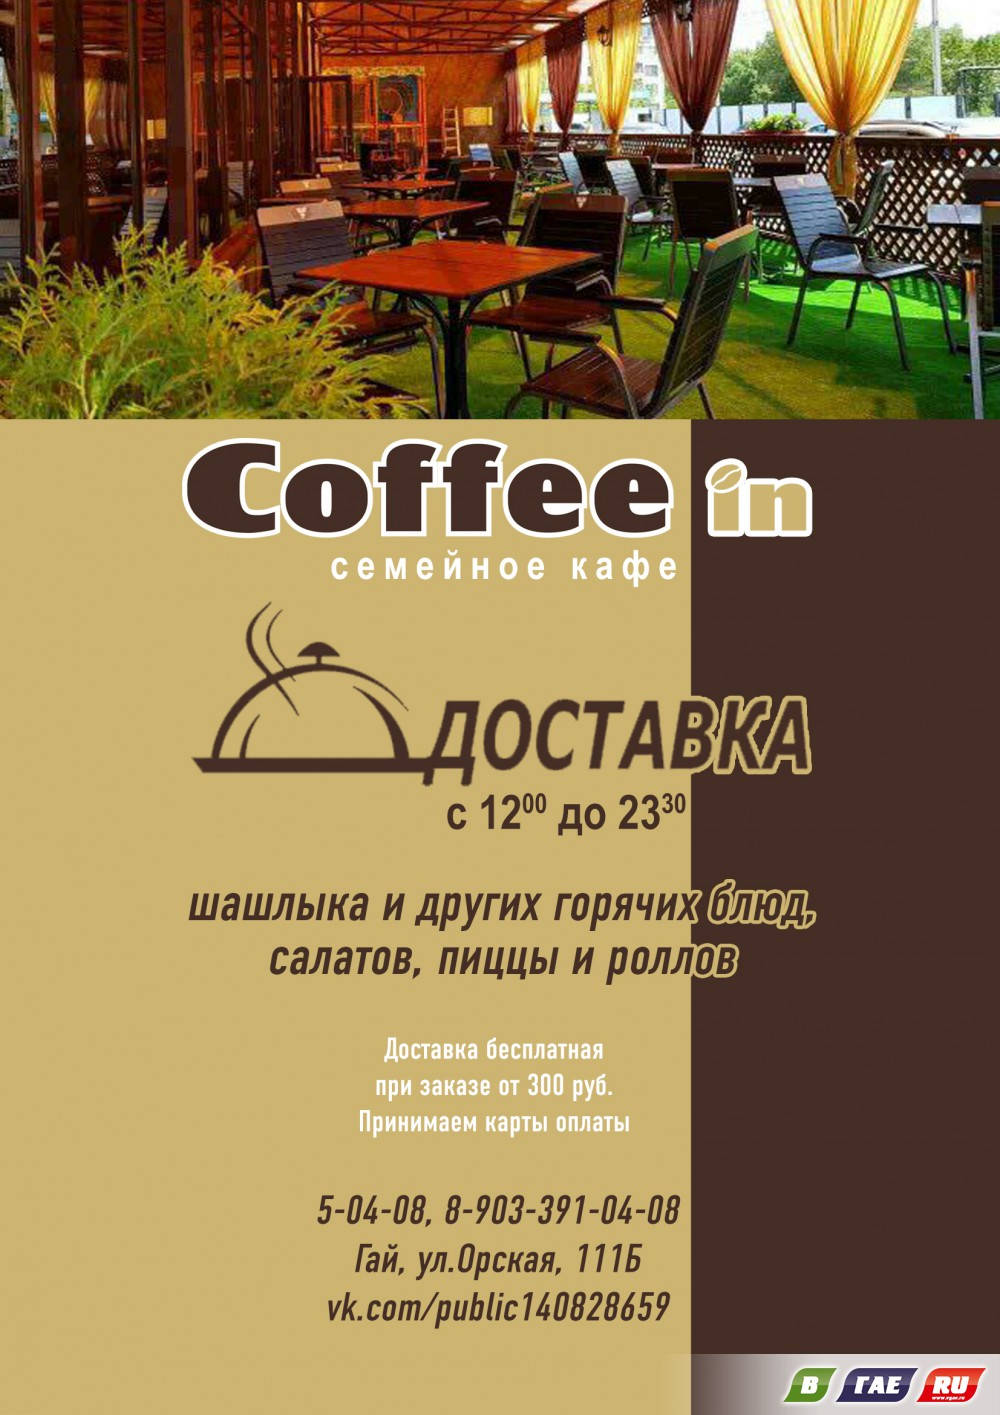 В семейном кафе «Coffee in» открылась летняя веранда